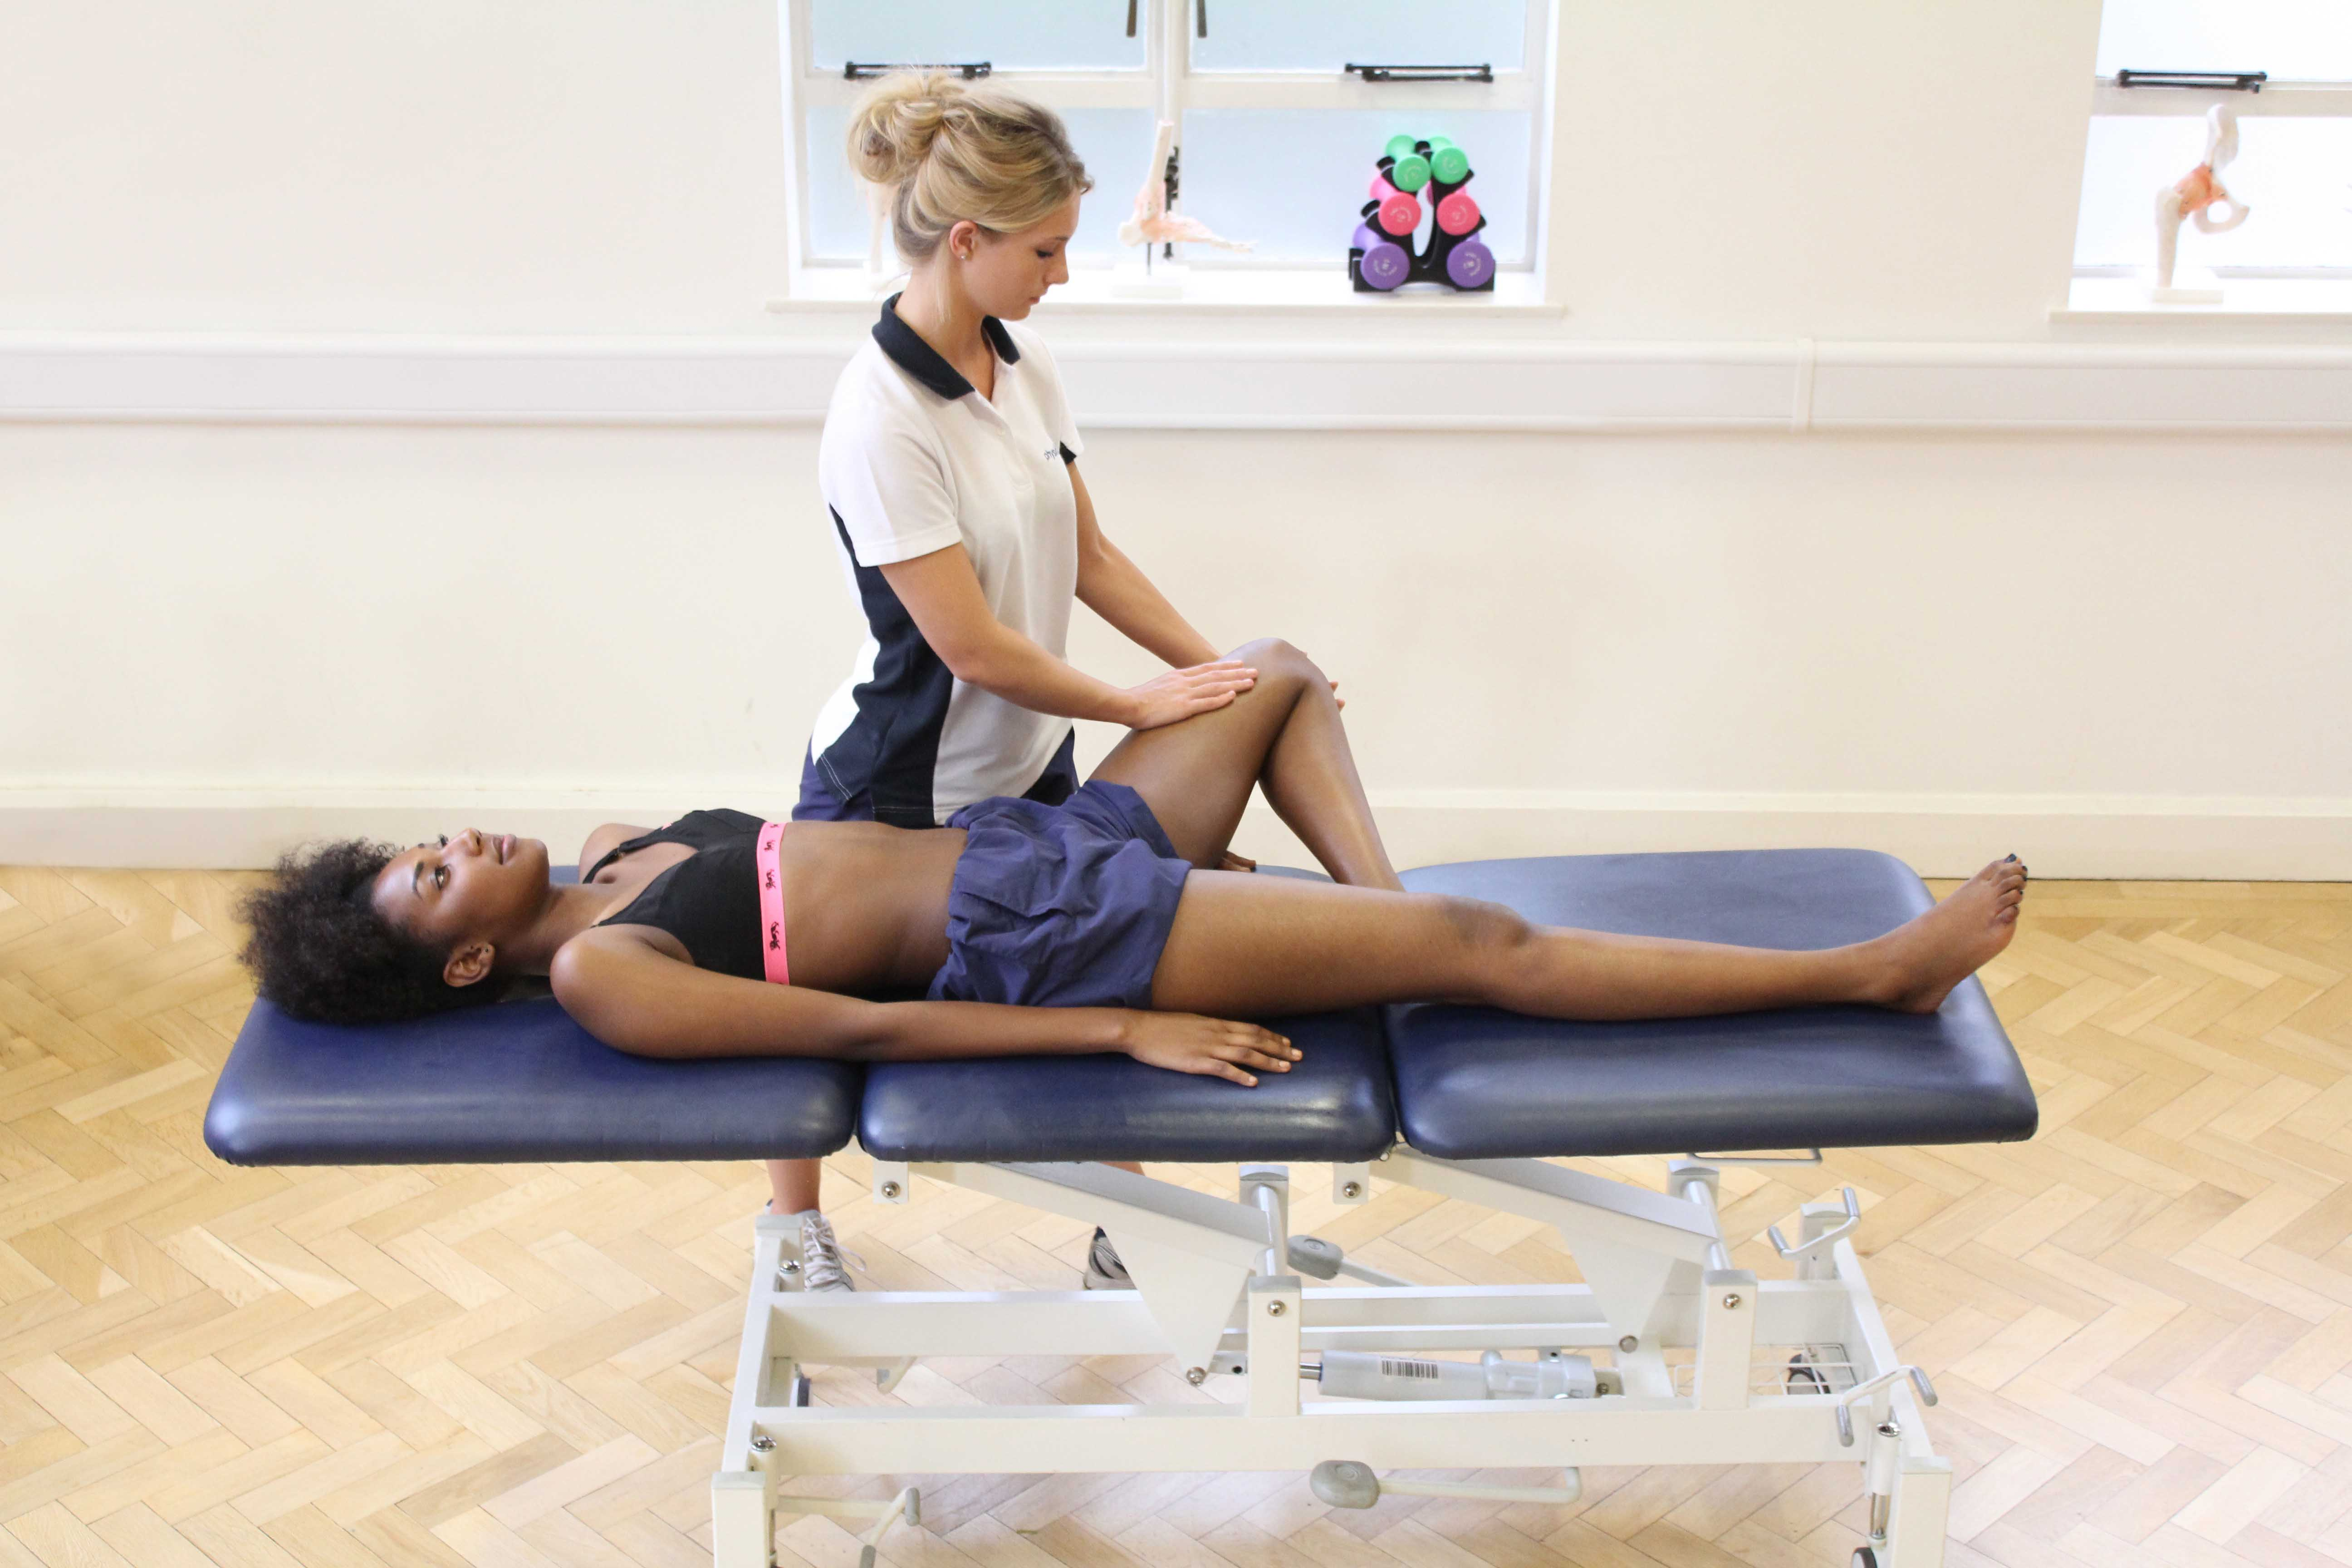 Soft tissue massage of the muscle and connective tissues around the knee